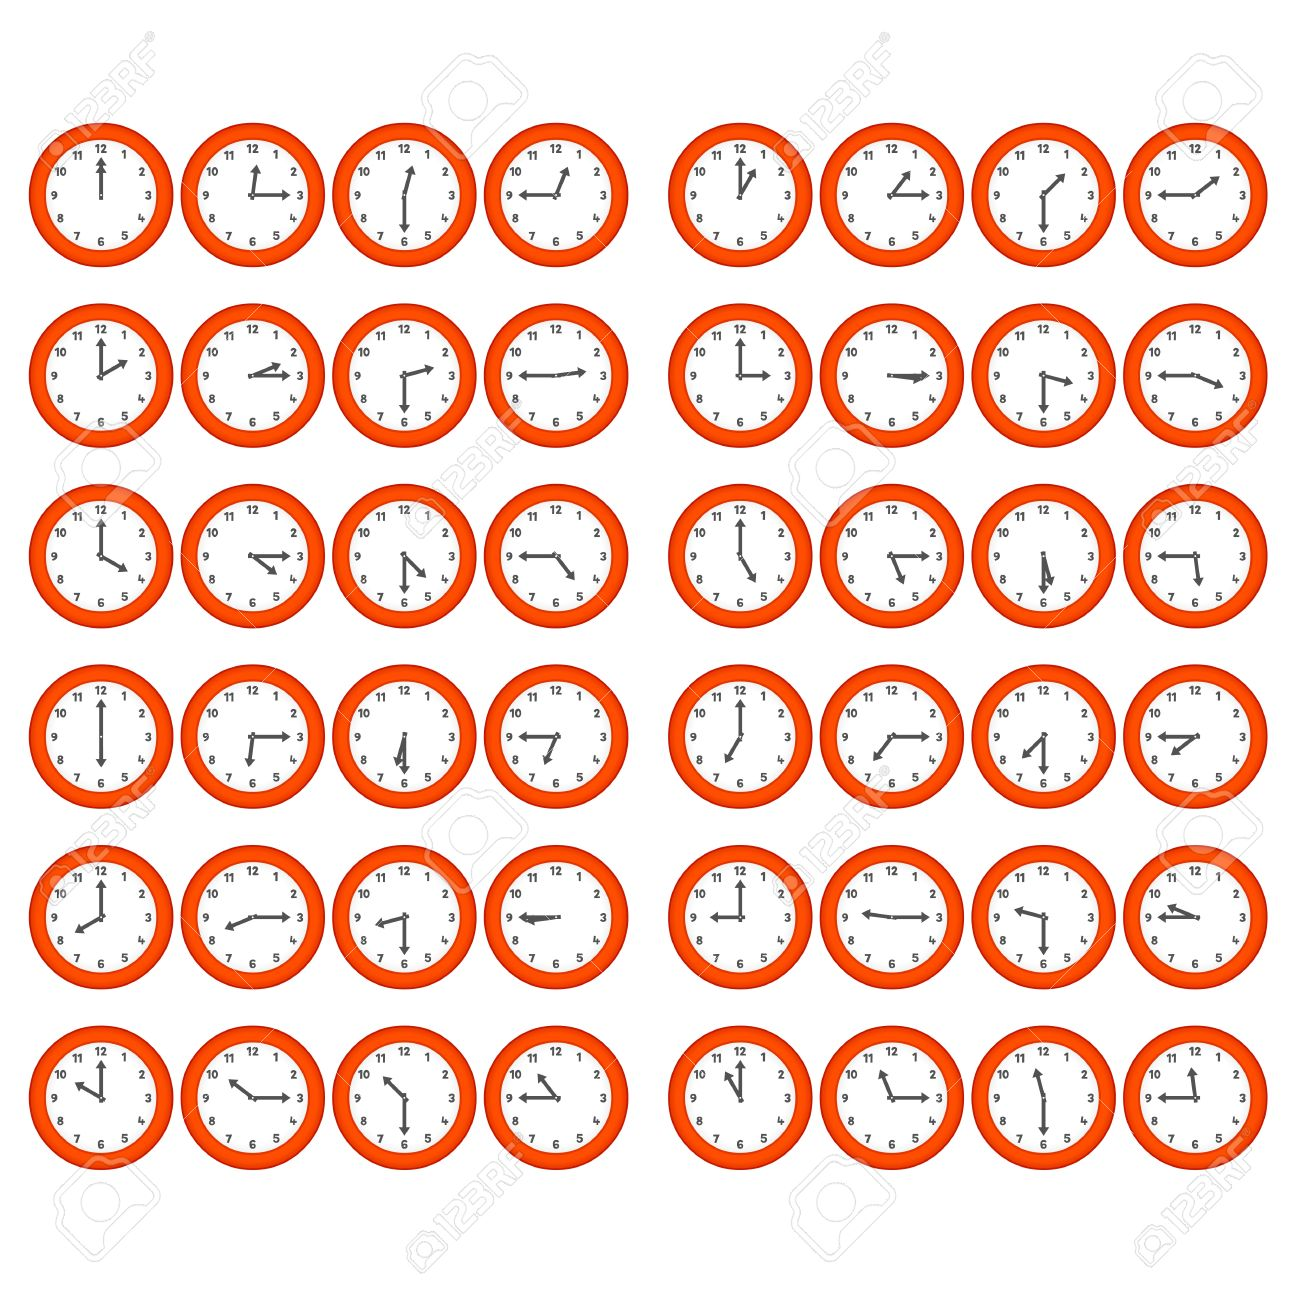 Vector red numerical clocks showing every 15 minutes Stock Vector - 19986523